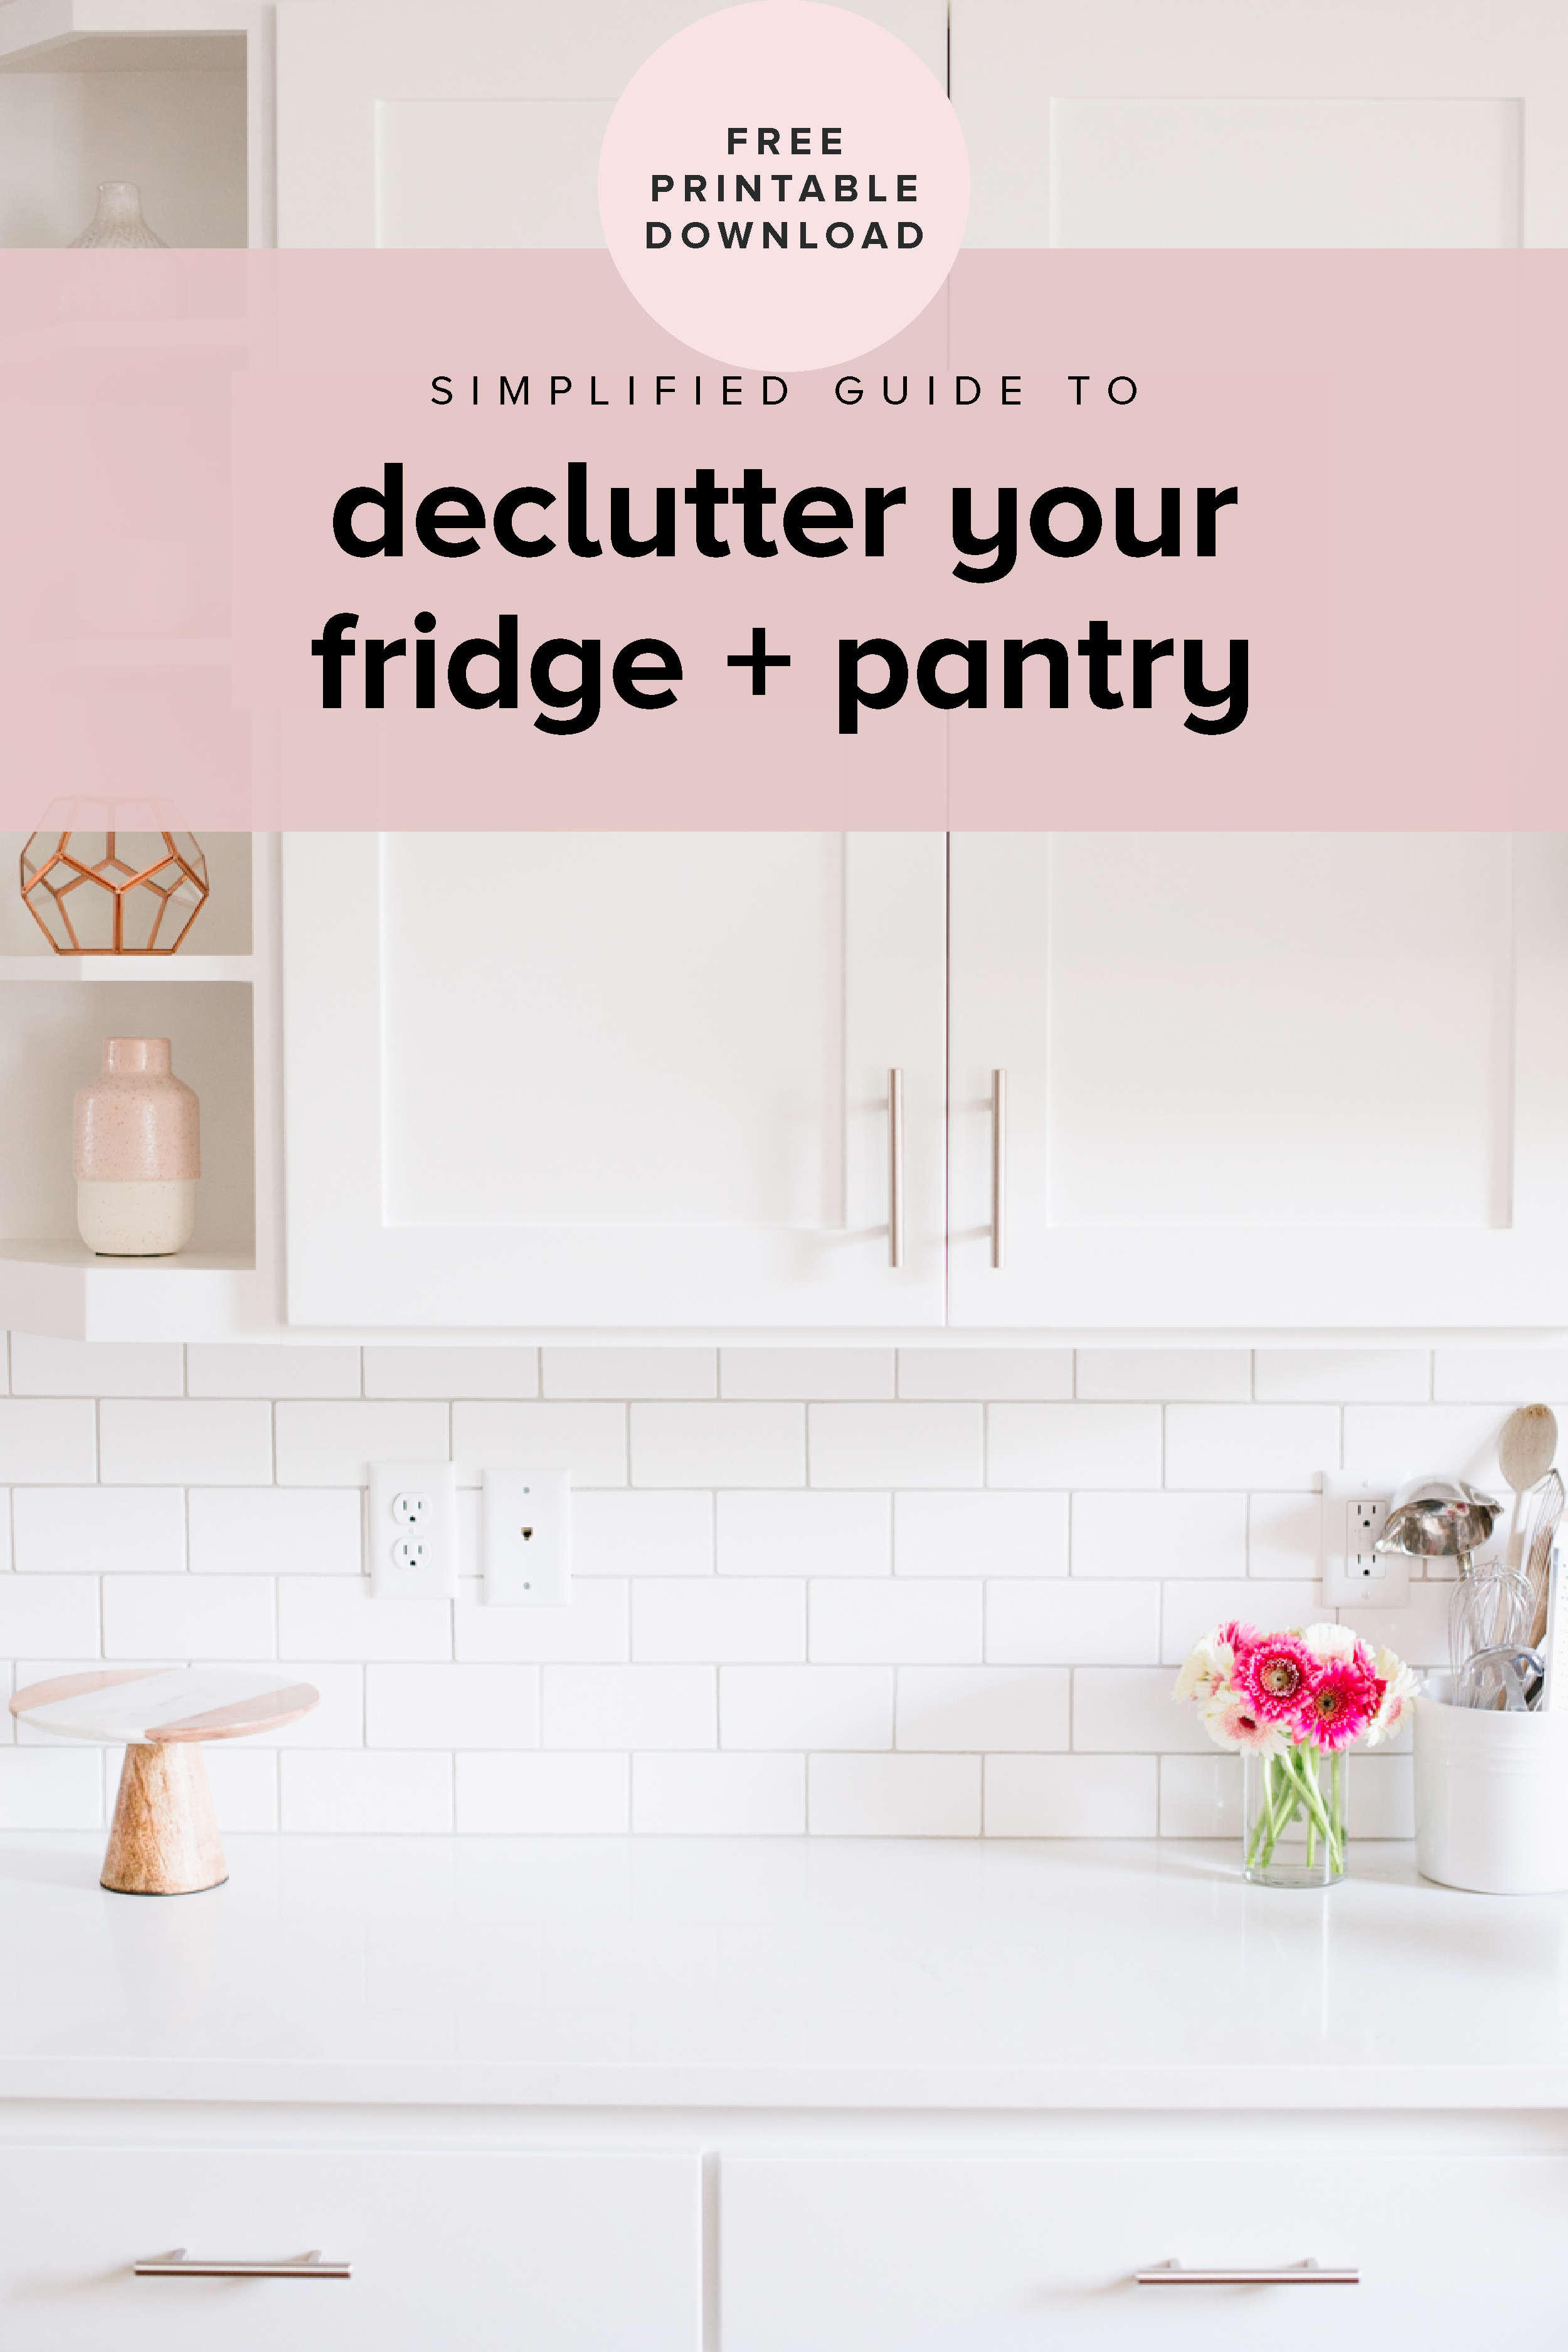 Free downloadable guide to declutter your fridge and pantry.